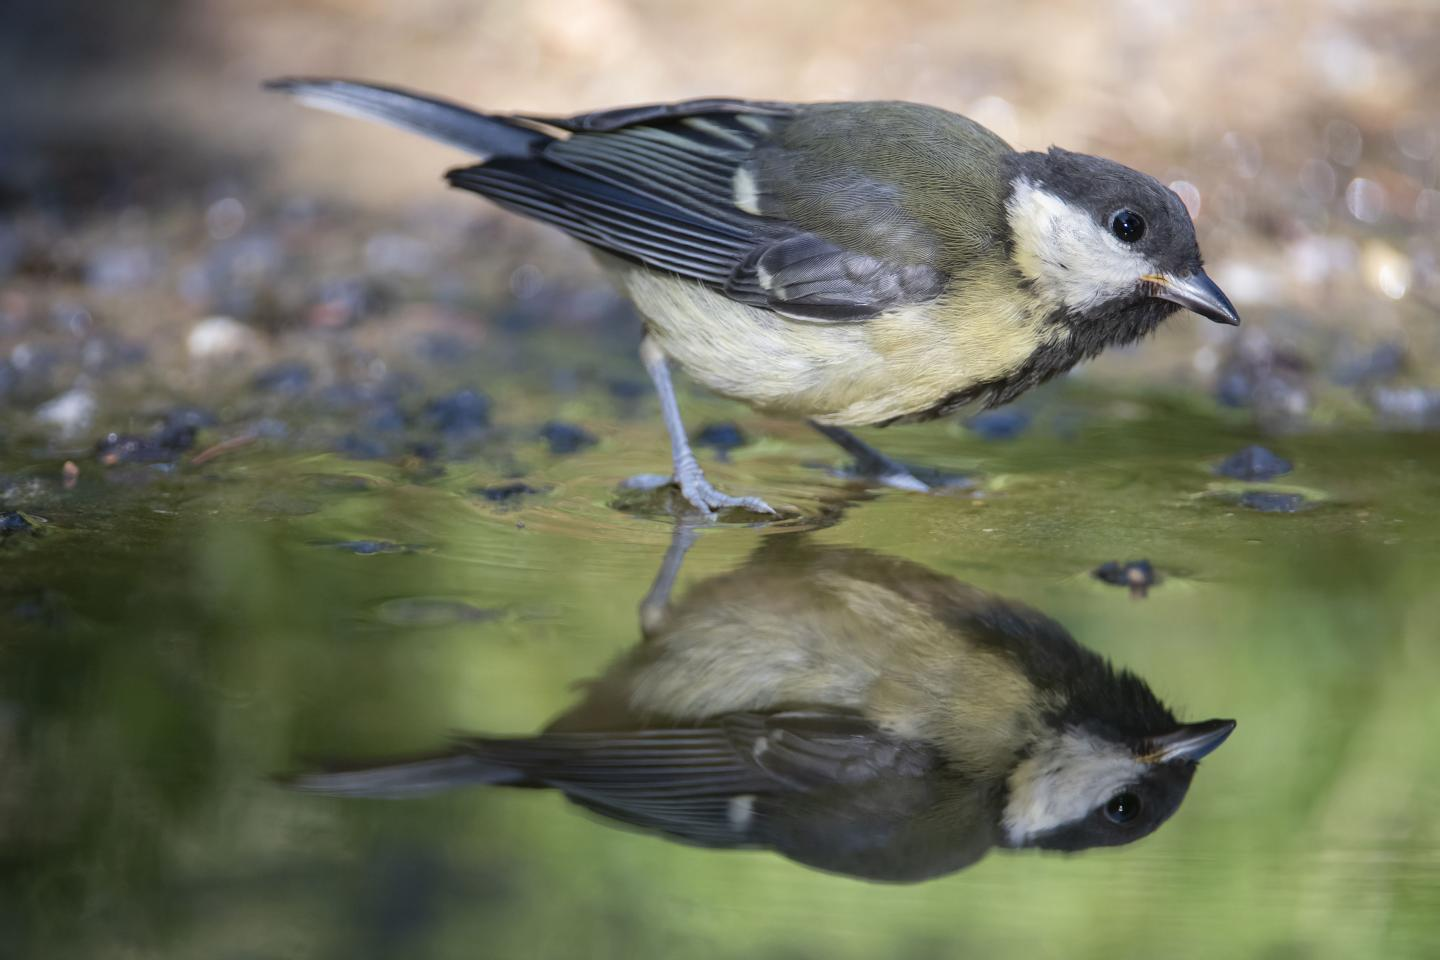 Small Bird Wading in Water